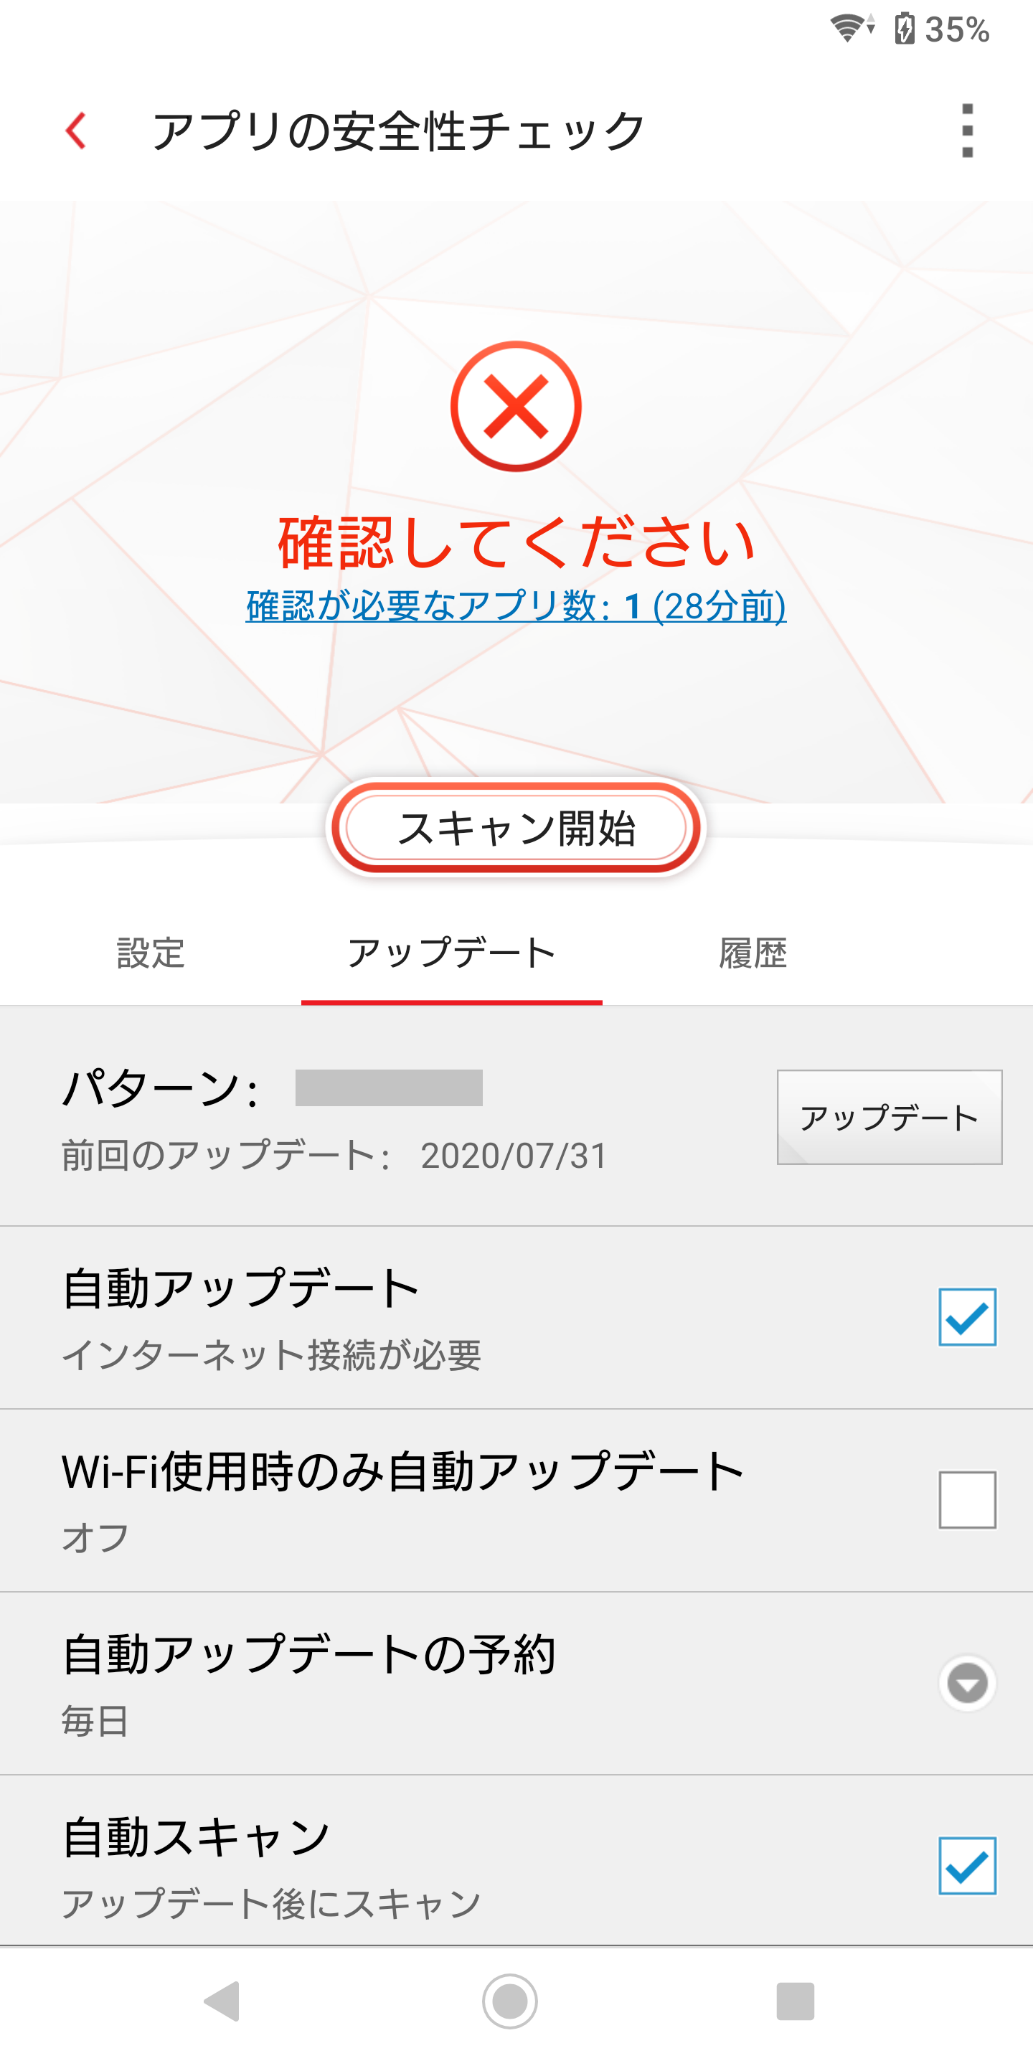 Enable Auto-update